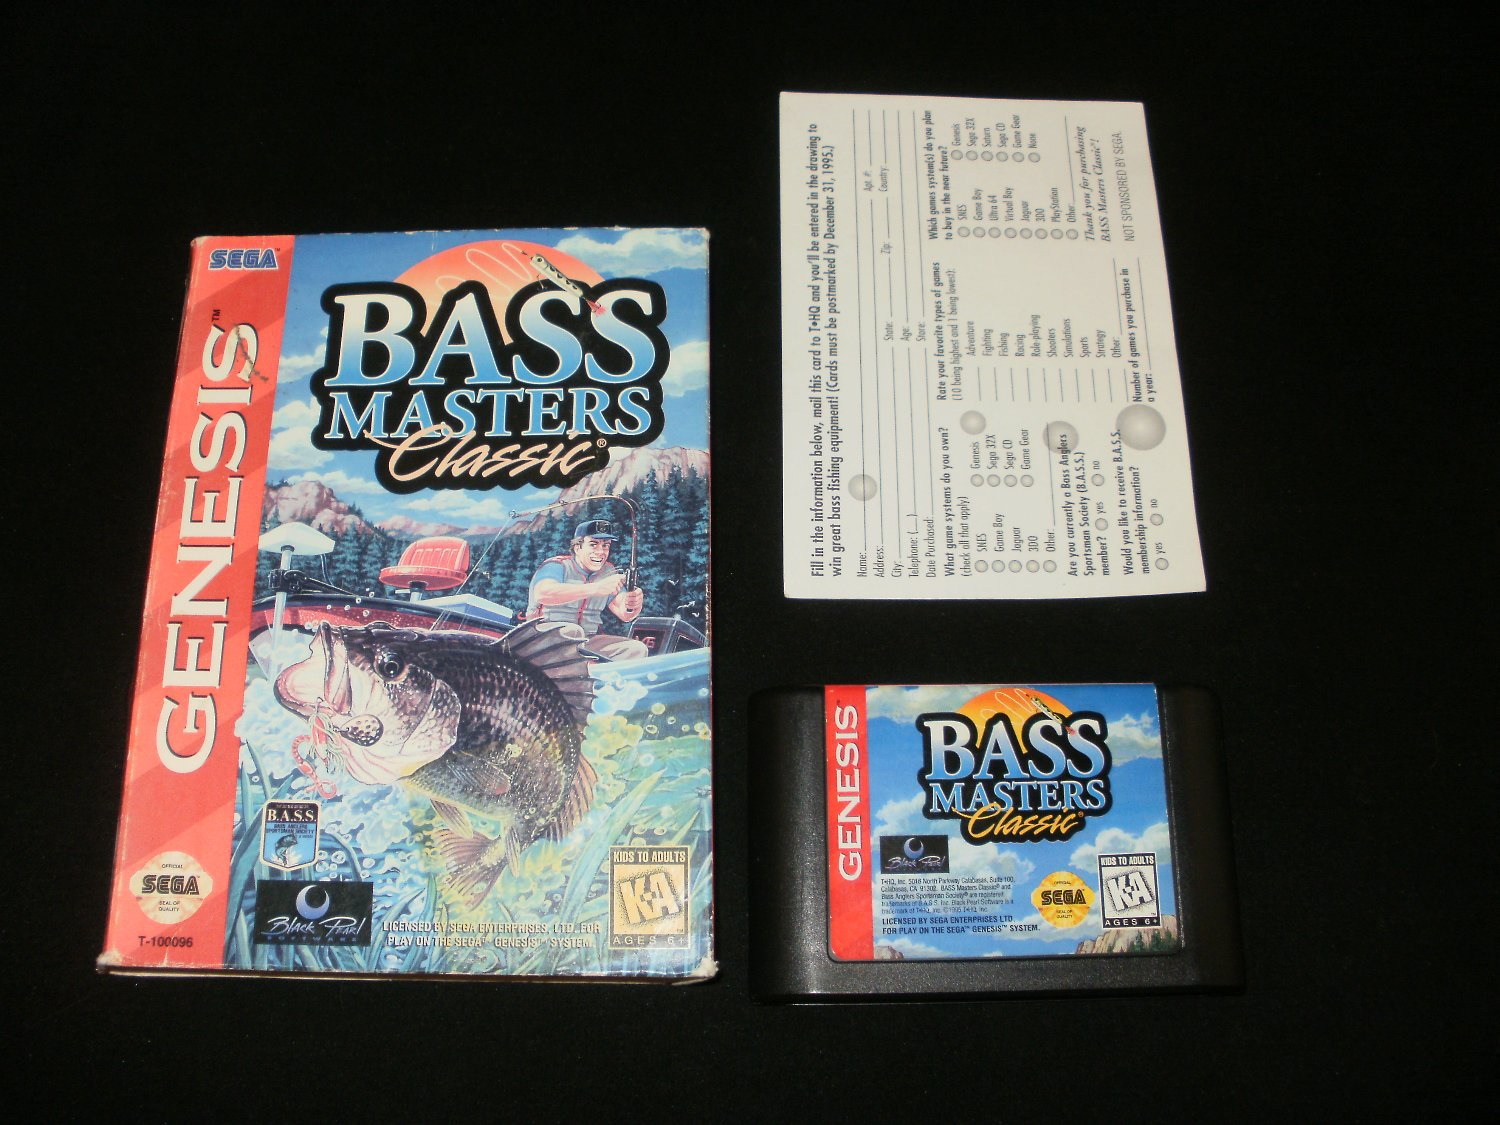 Bass Masters Classic - Sega Genesis - With Box & Warranty Card